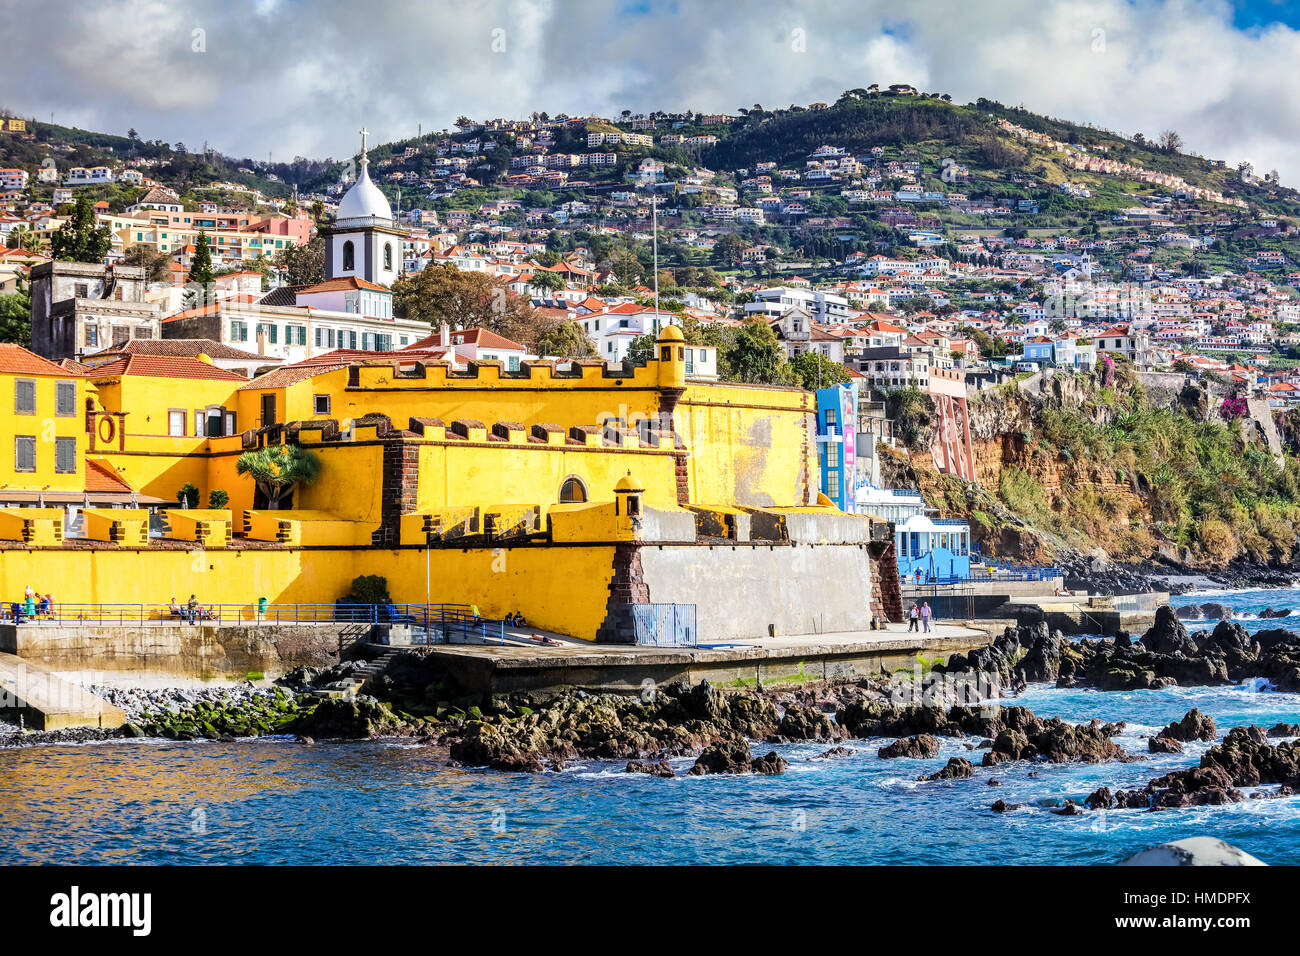 Old castle in Funchal, Madeira, Portugal - Stock Image